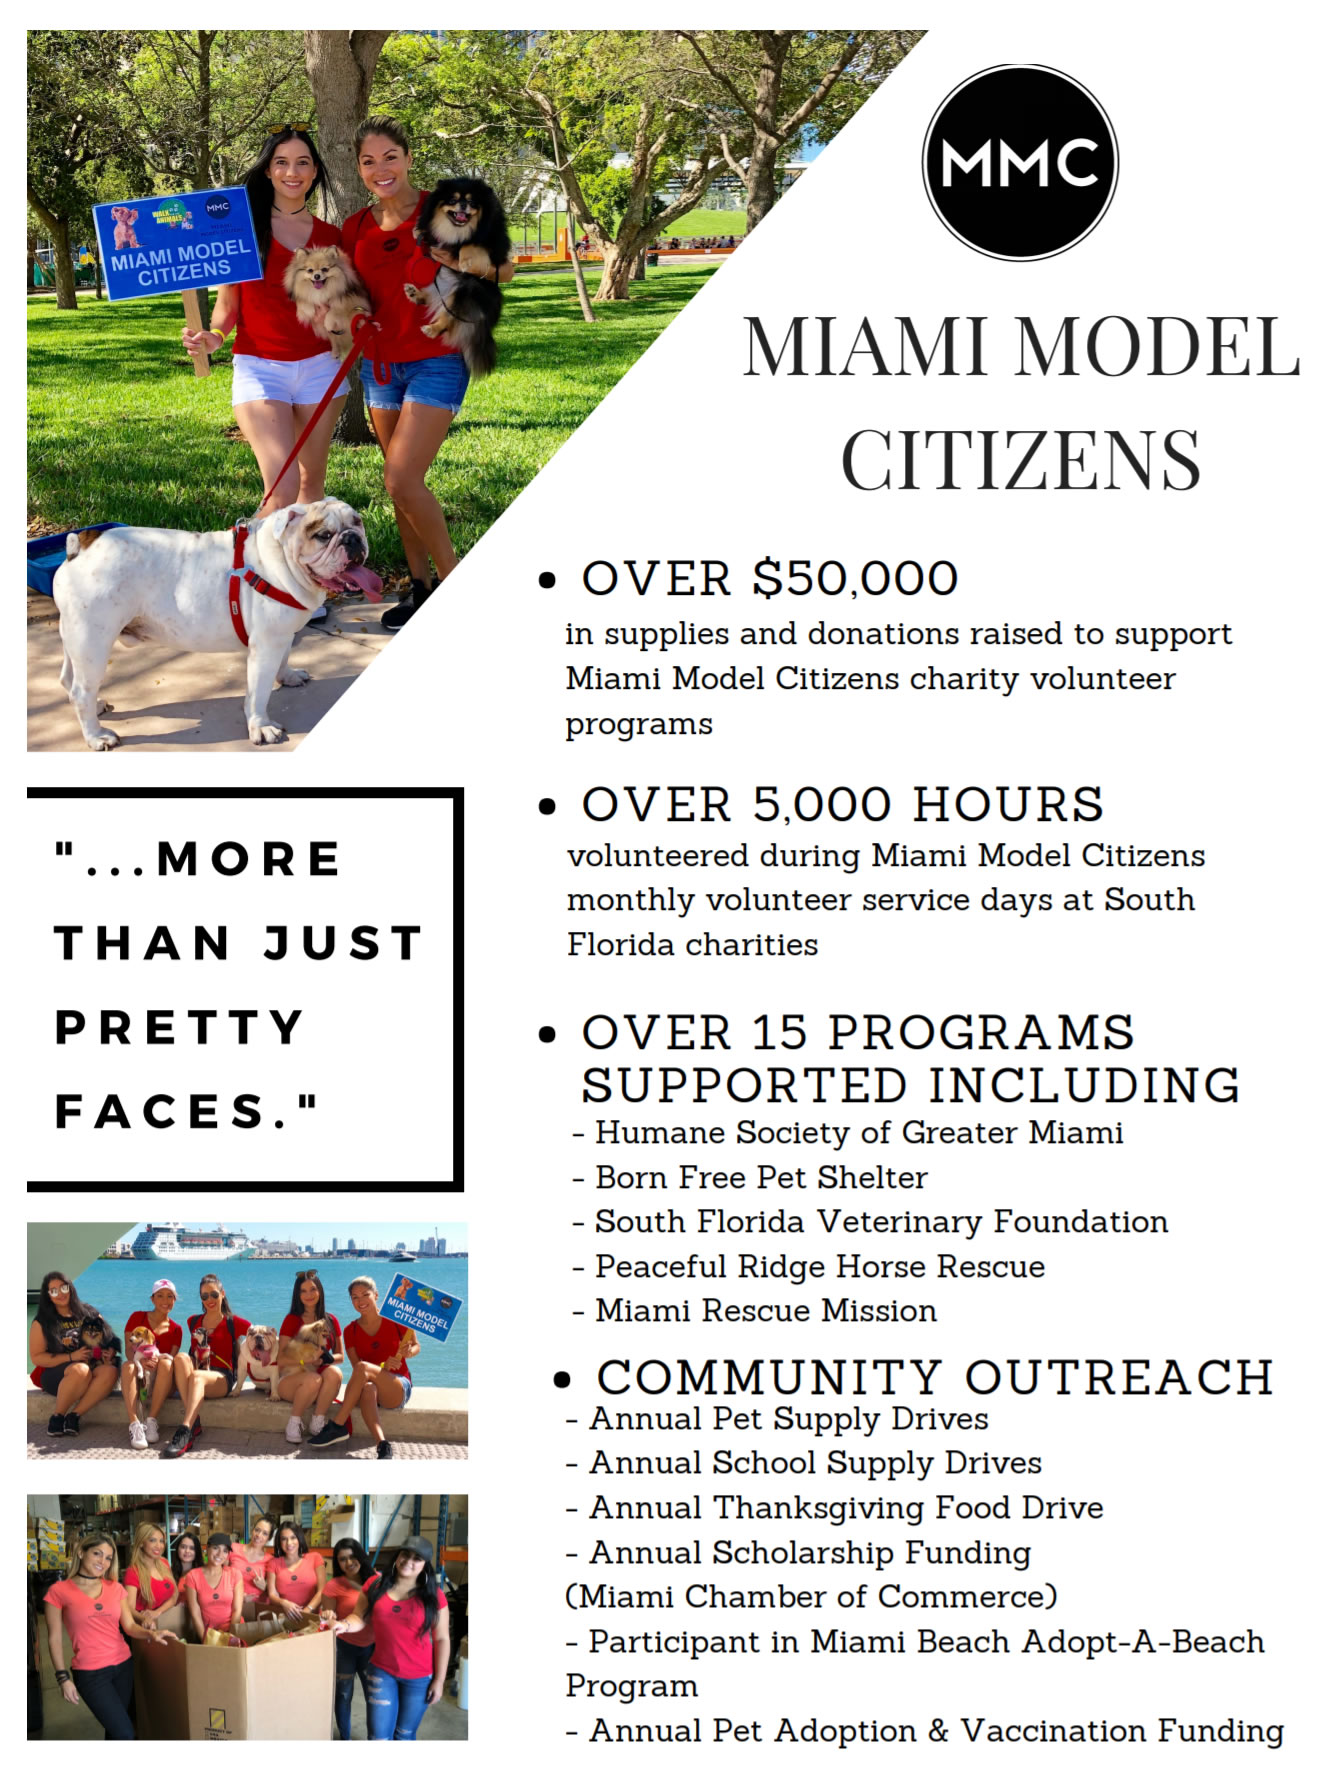 miami-model-citizens-charity-foundation